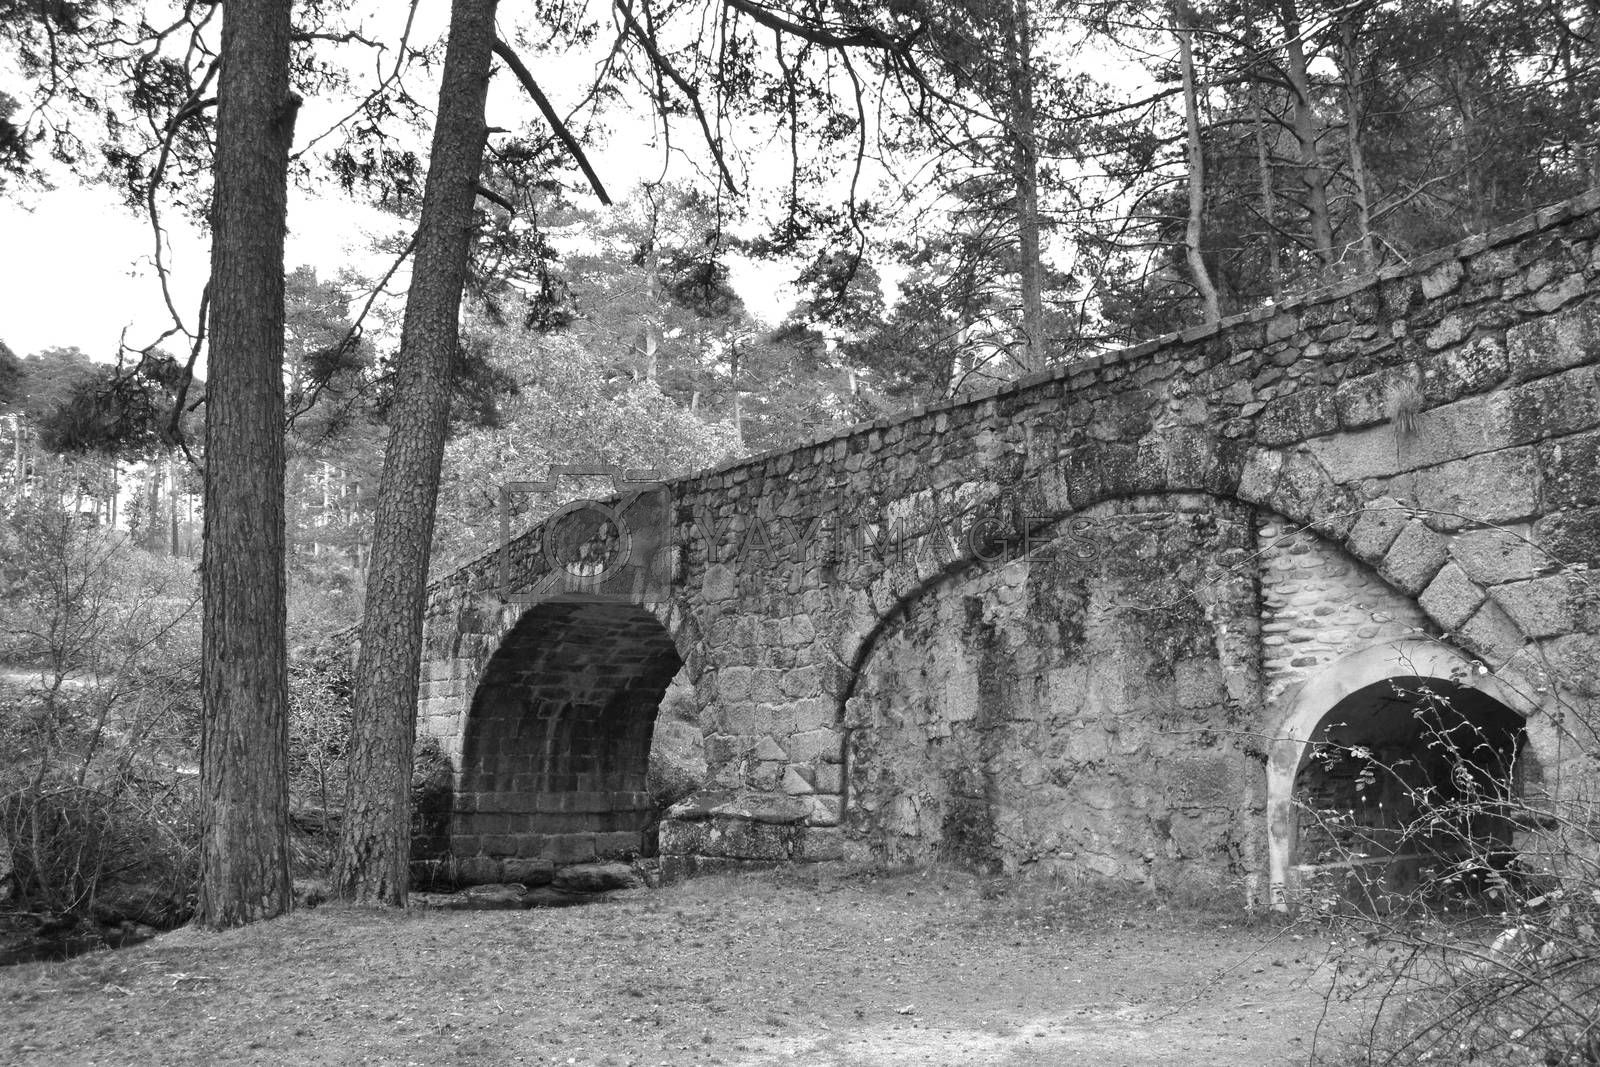 Stone bridge on a path of a forest in black and white